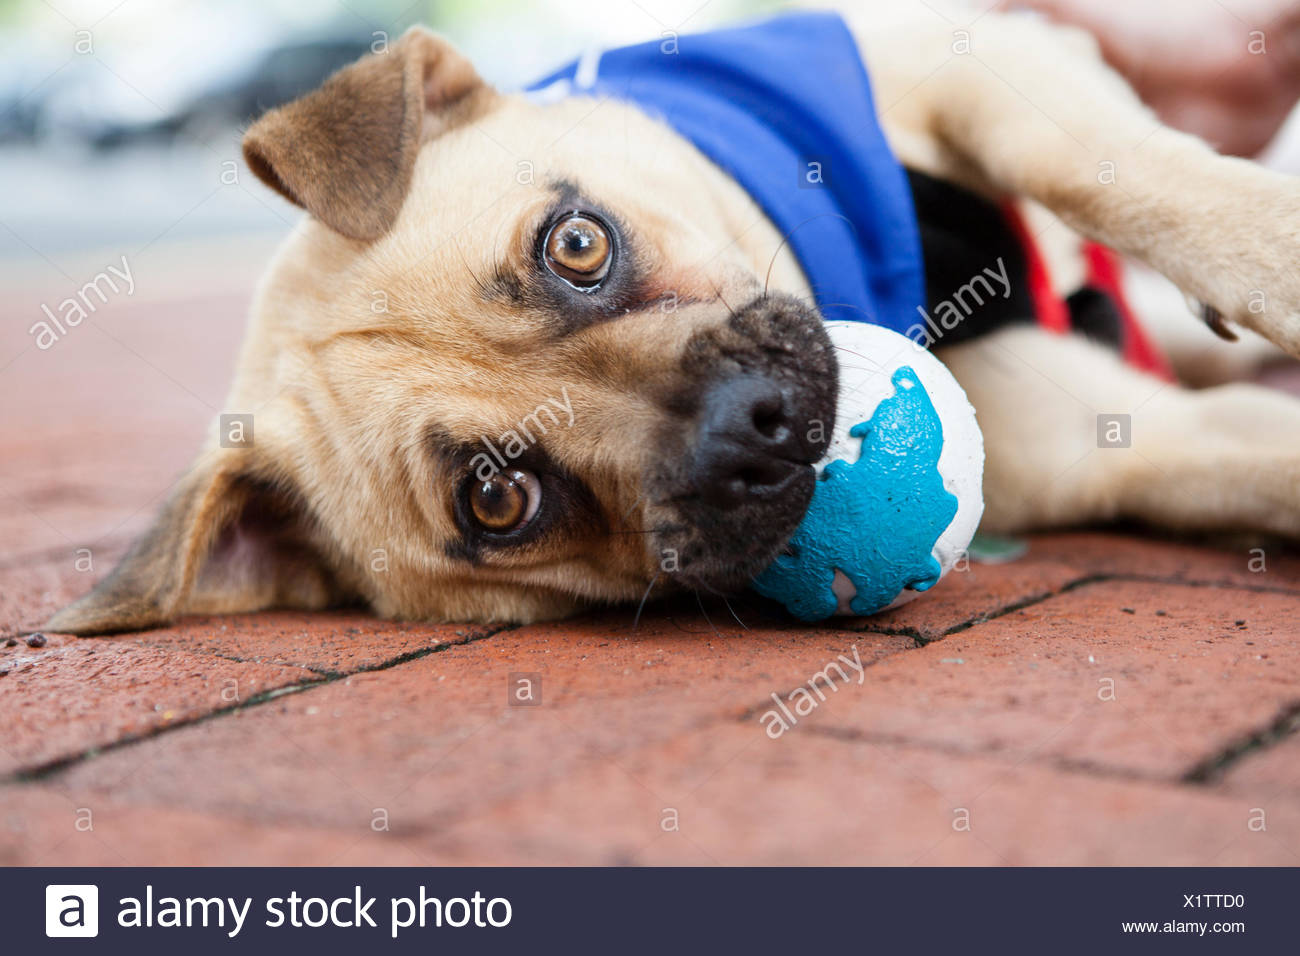 A rescued pug mix plays with a rubber ball at an adoption event in Arlington, Virginia. - Stock Image